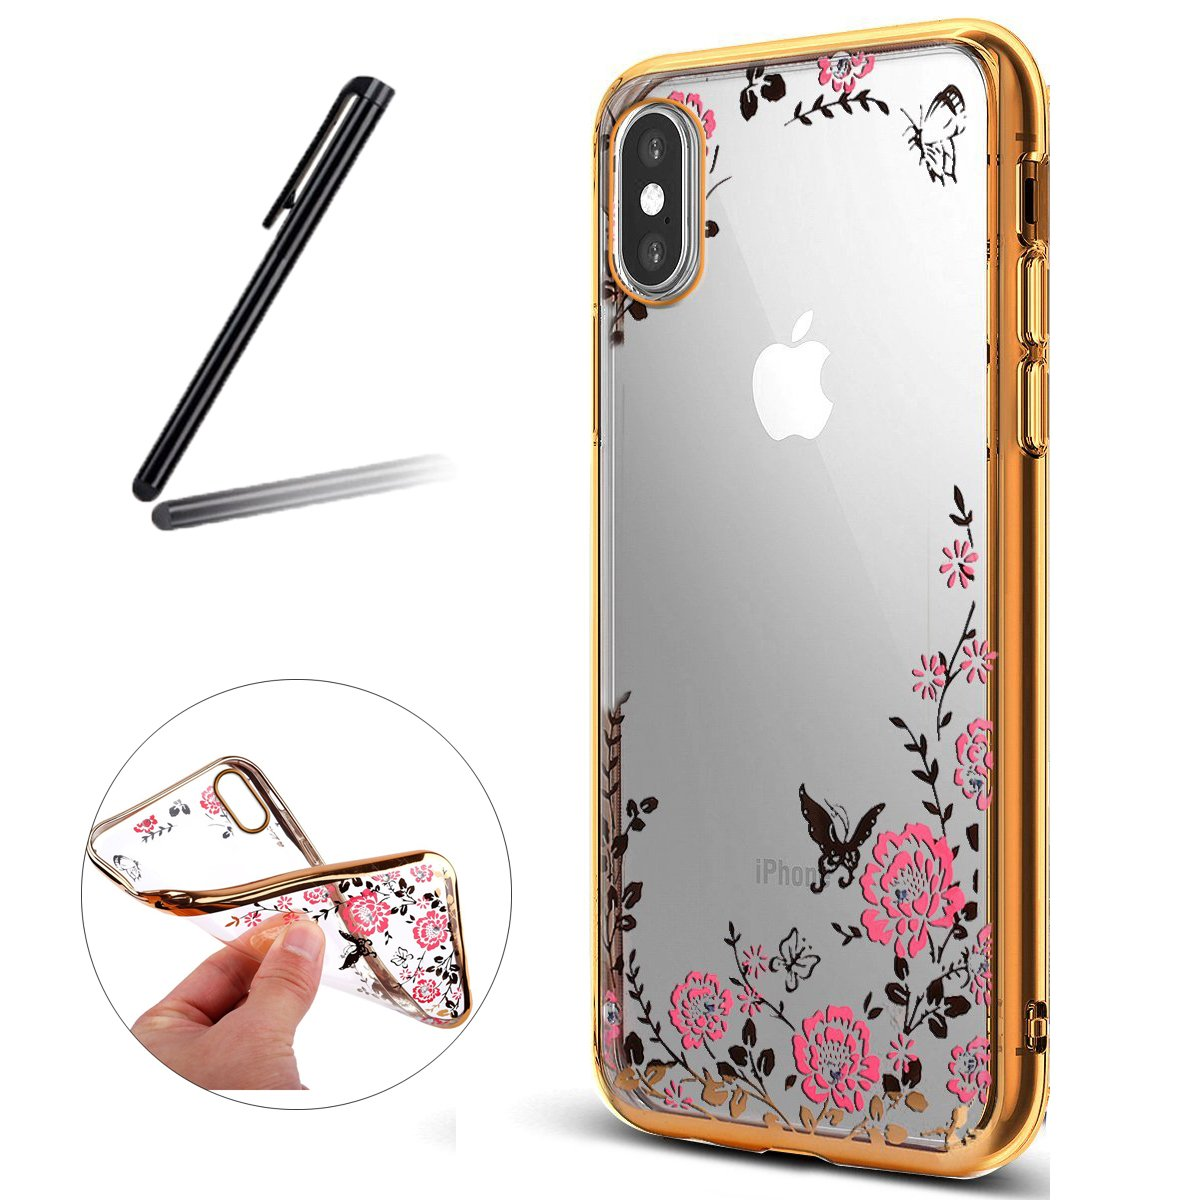 iPhone X Case, iPhone 10 Case, iPhone X Cover, SKYMARS Electroplating Butterfly Flower Bling Glitter Diamond Clear TPU Back Transparent Soft Flexible Silicone Bumper Protective Case For iPhone 10 / iPhone X Gold